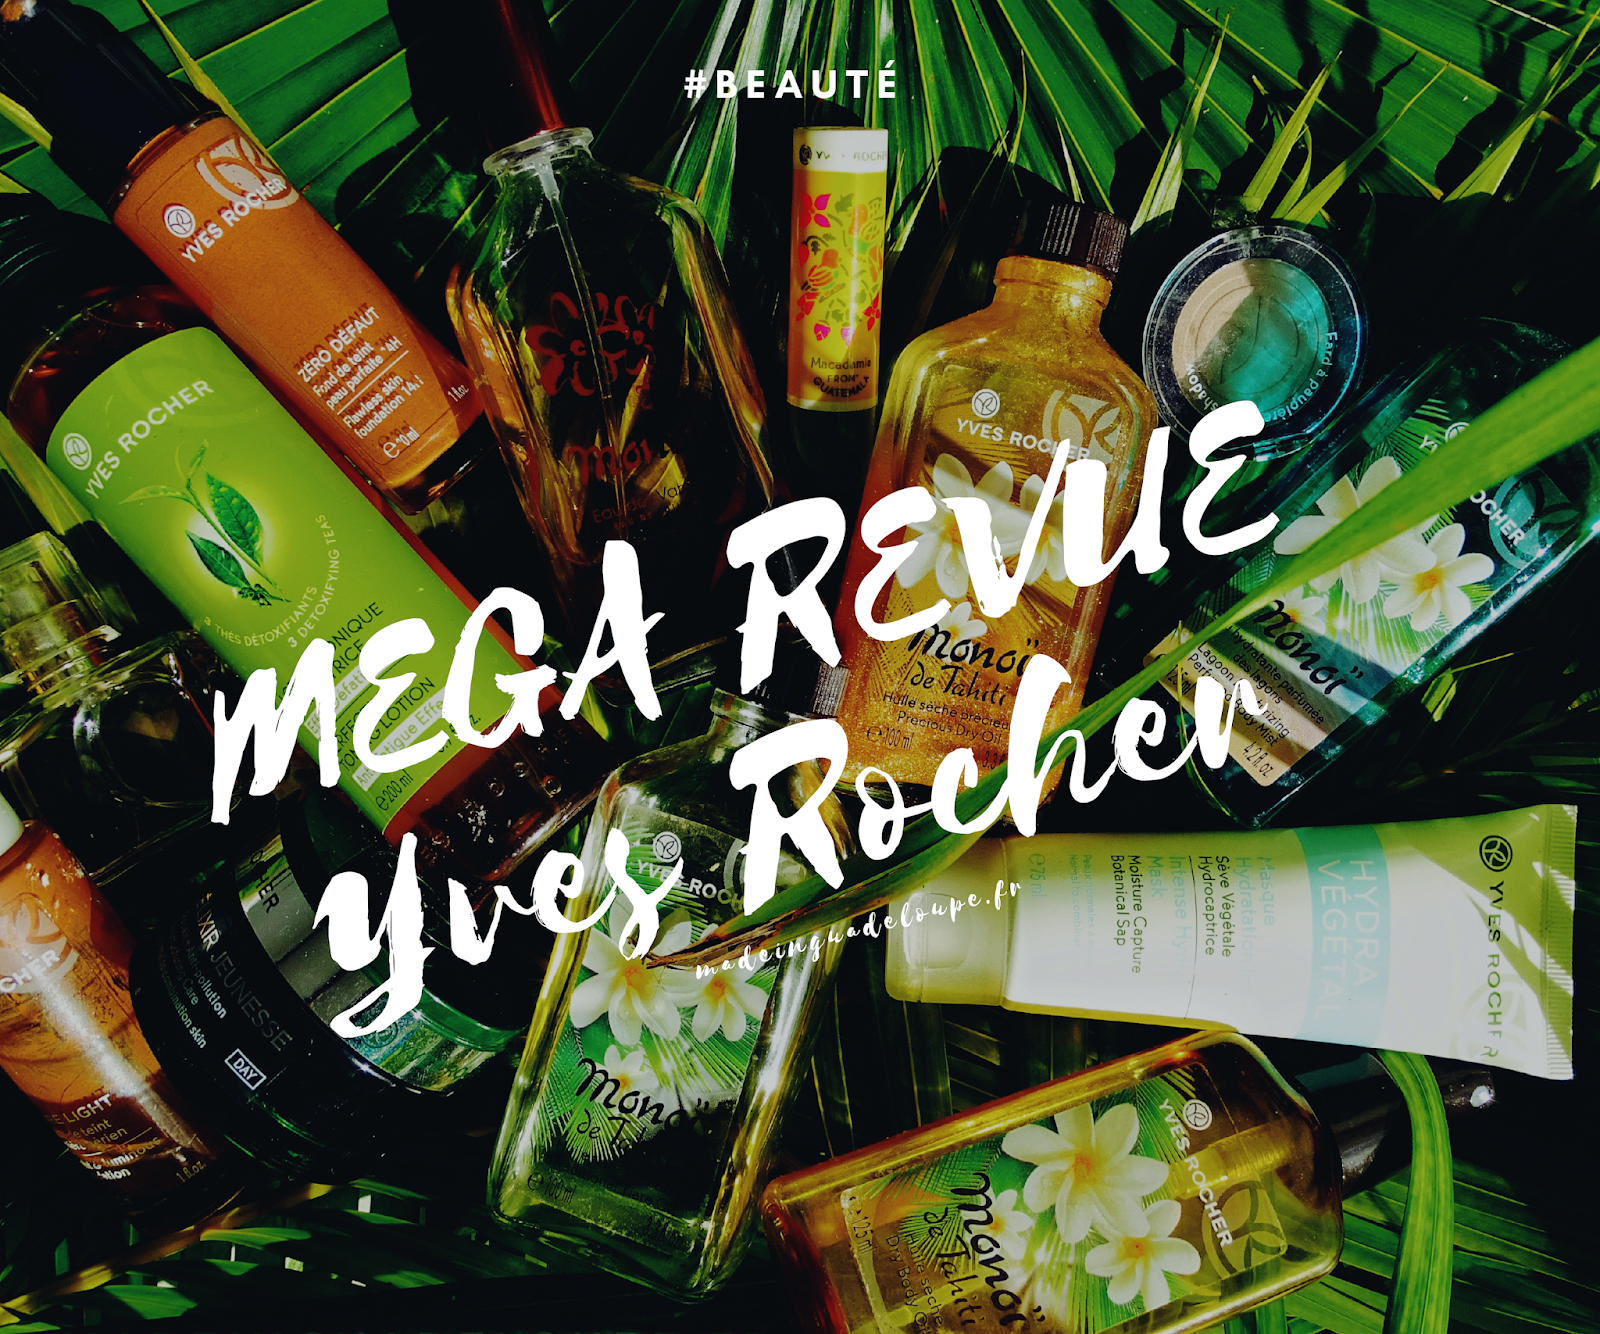 https://www.madeinguadeloupe.fr/2019/03/mega-revue-yves-rocher-maquillage-soins-parfums-monoi.html